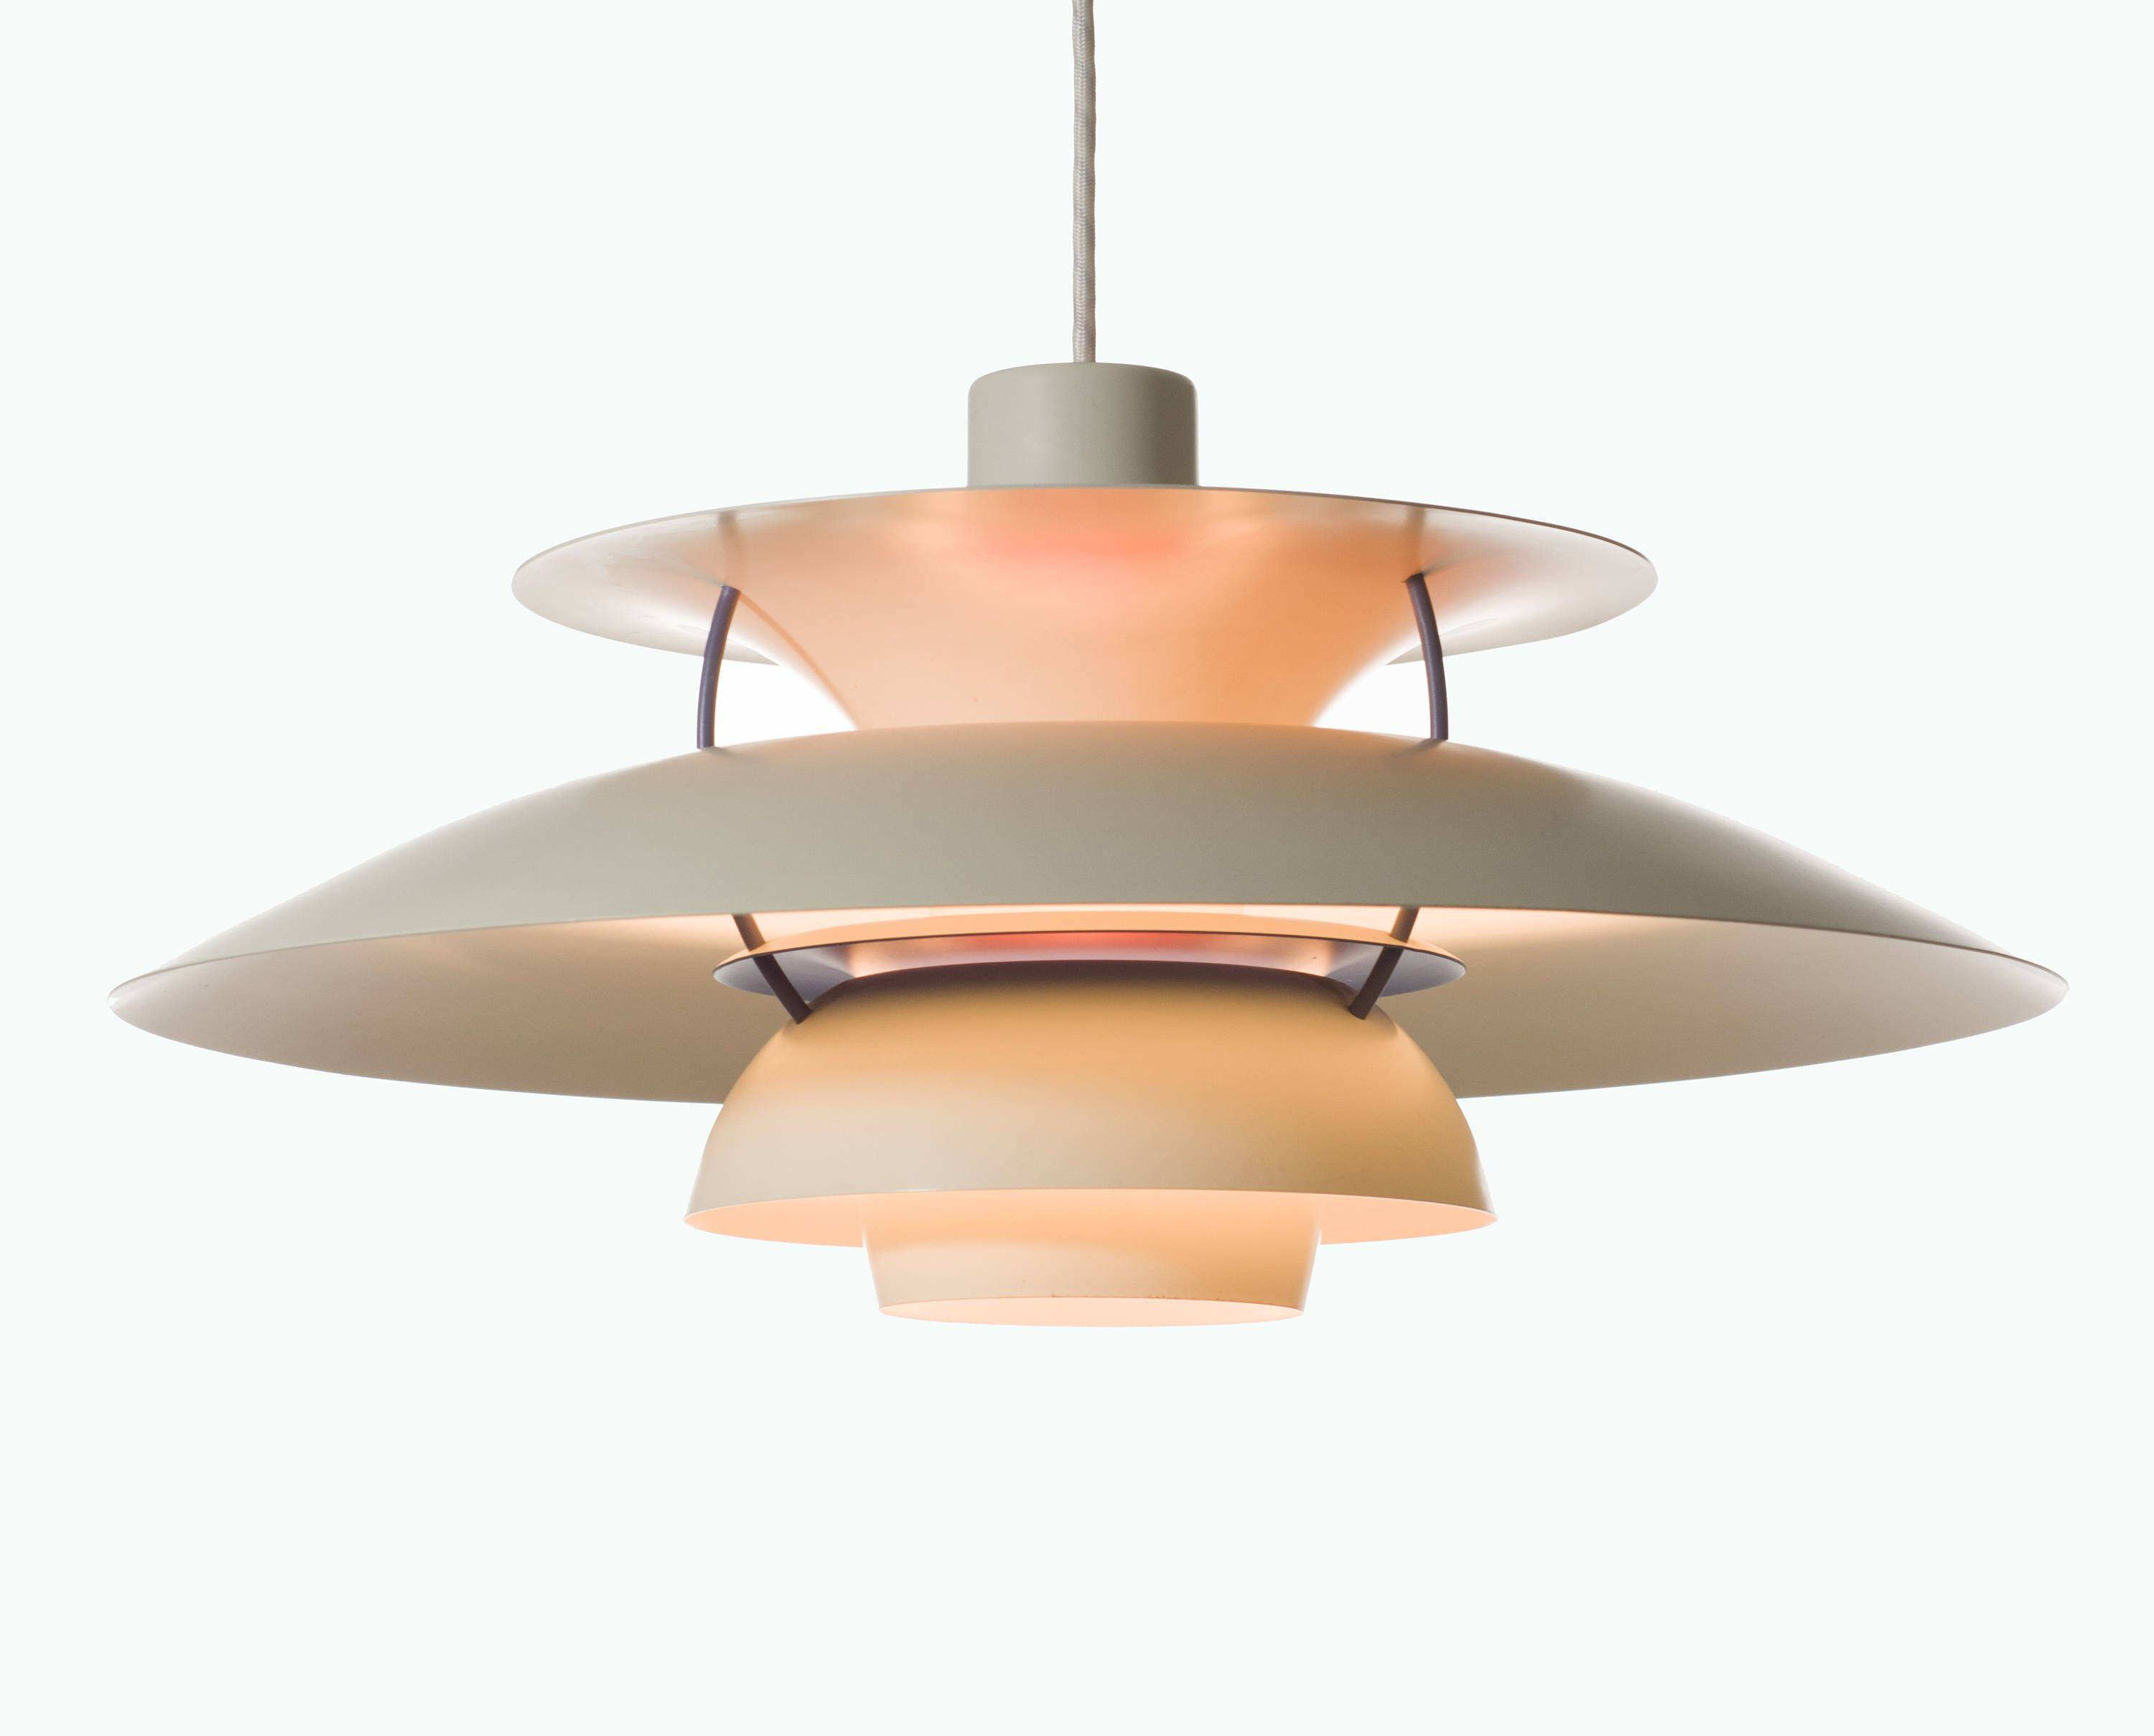 Ph5 pendant by poul henningsen for louis poulsen 1958 iconic ph5 pendant by poul henningsen for louis poulsen 1958 iconic danish design pendant light aloadofball Choice Image